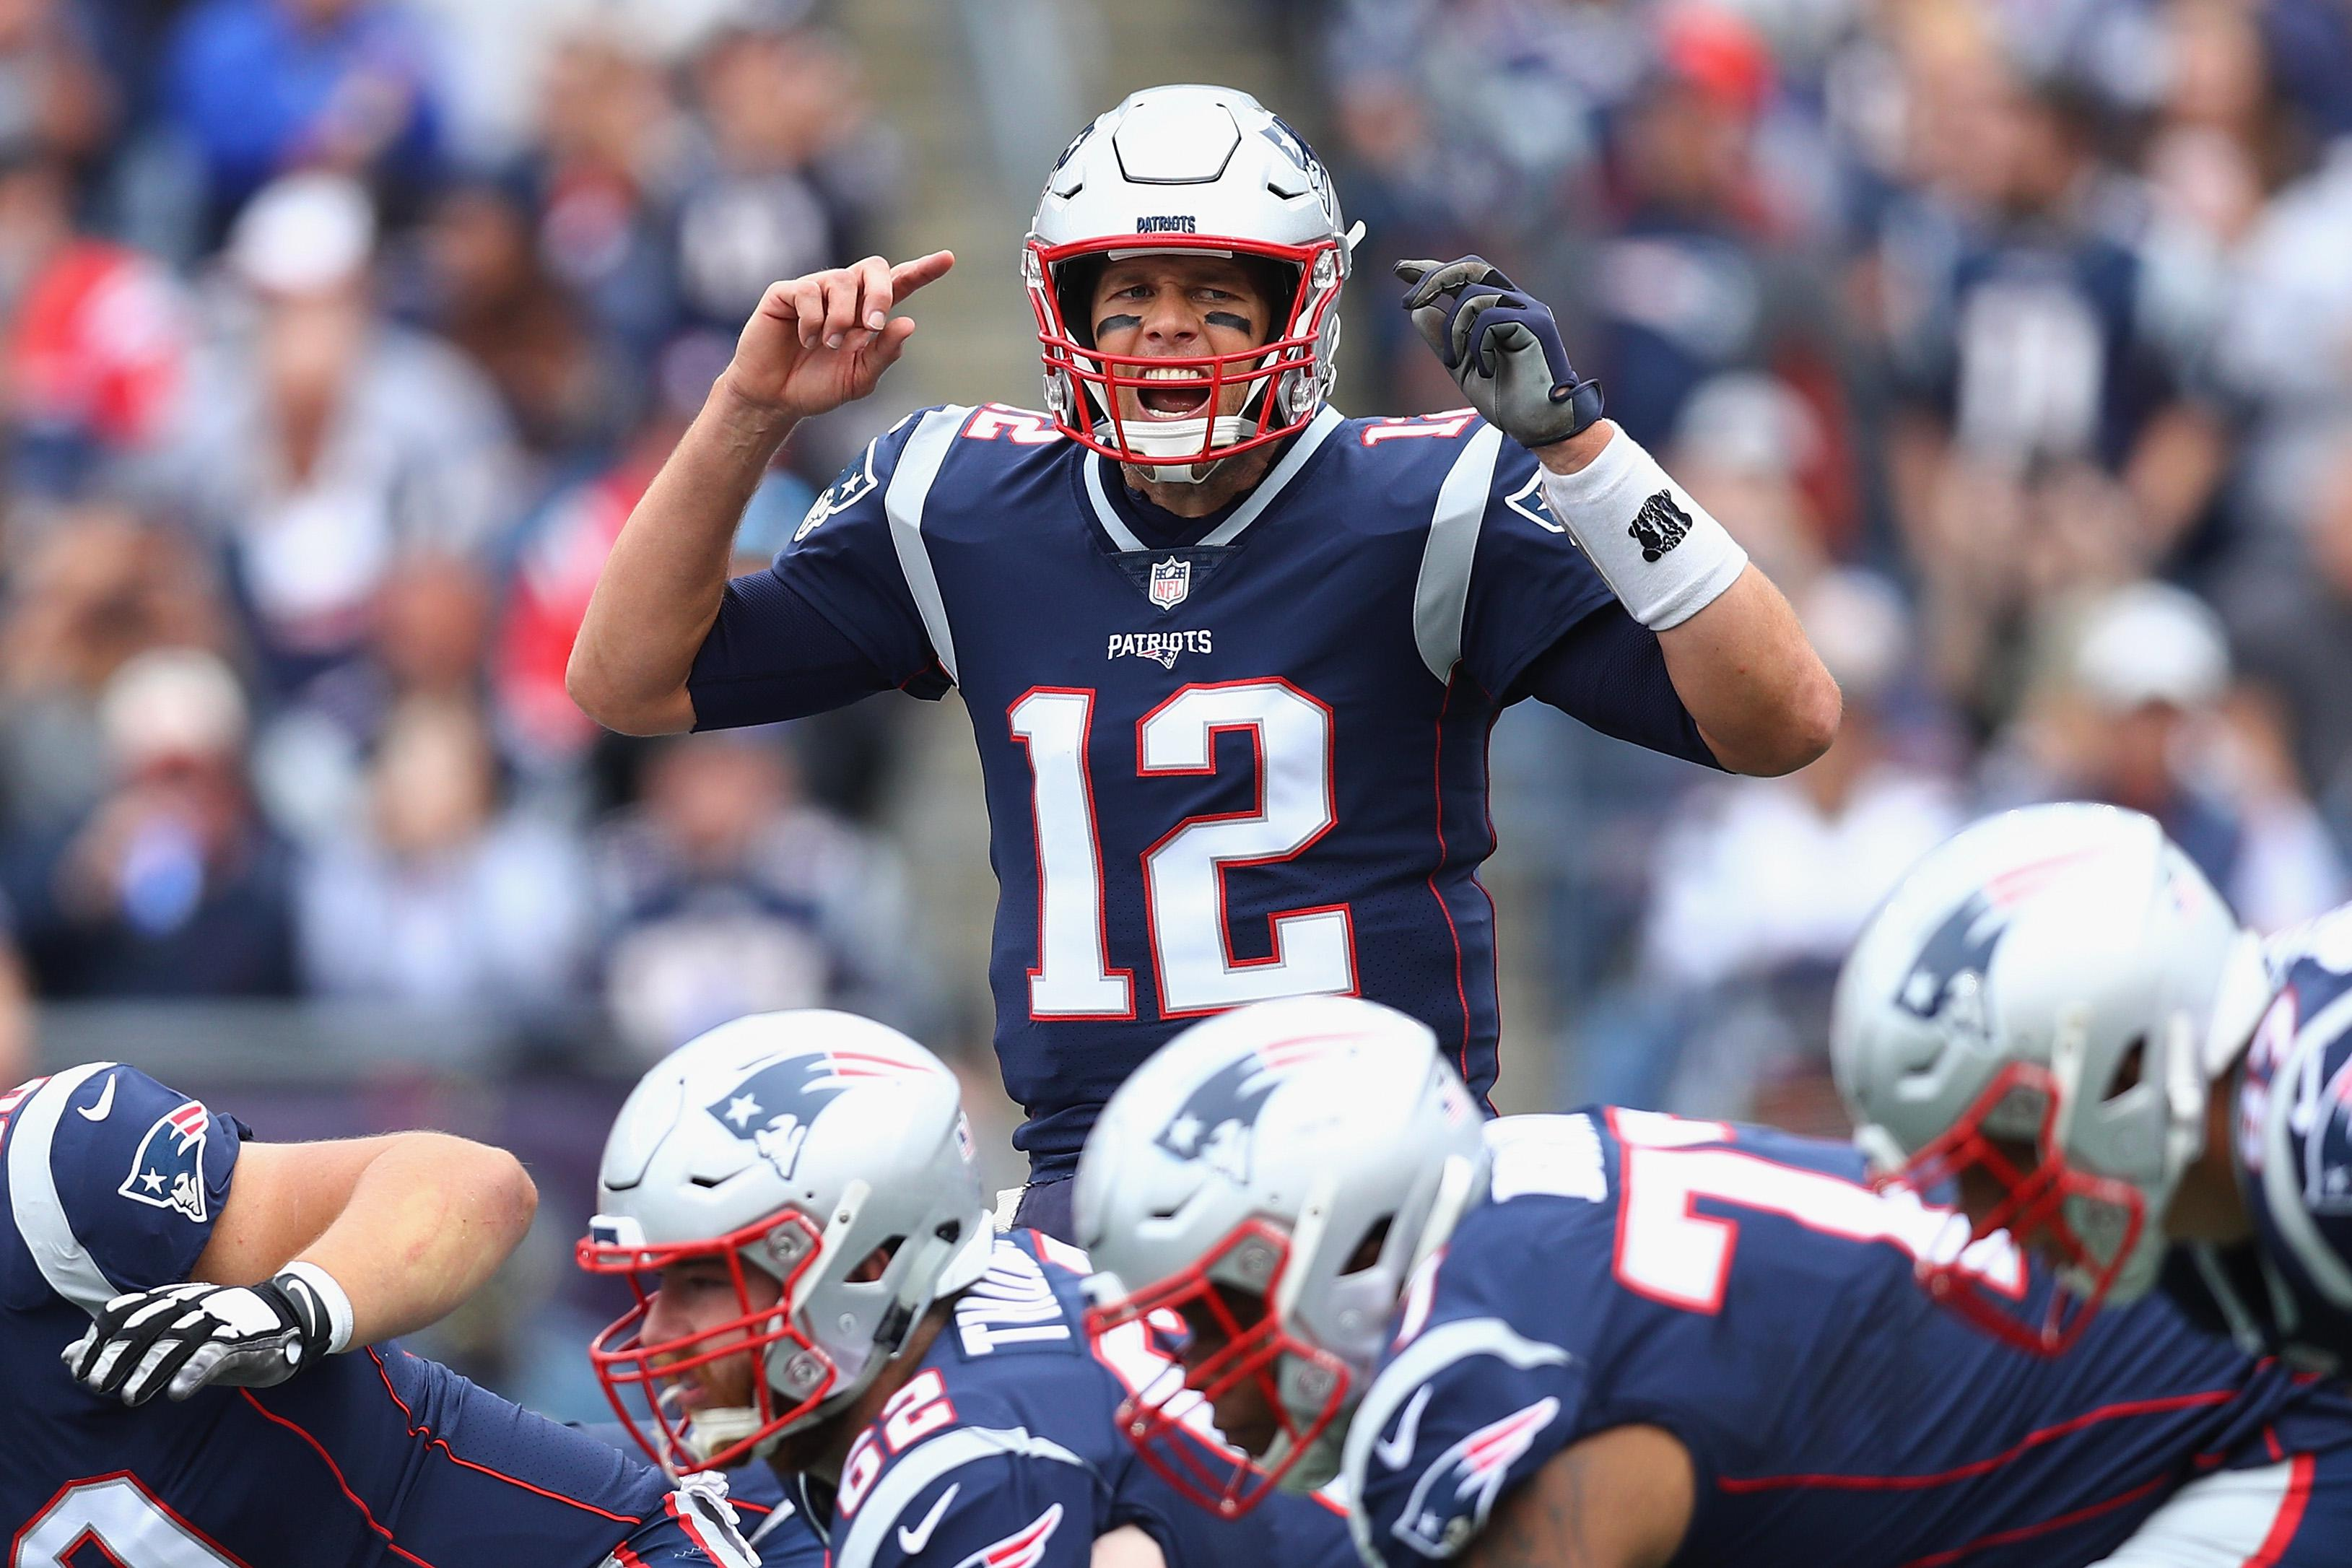 Tom Brady gestures at the line of scrimmage during an NFL game.